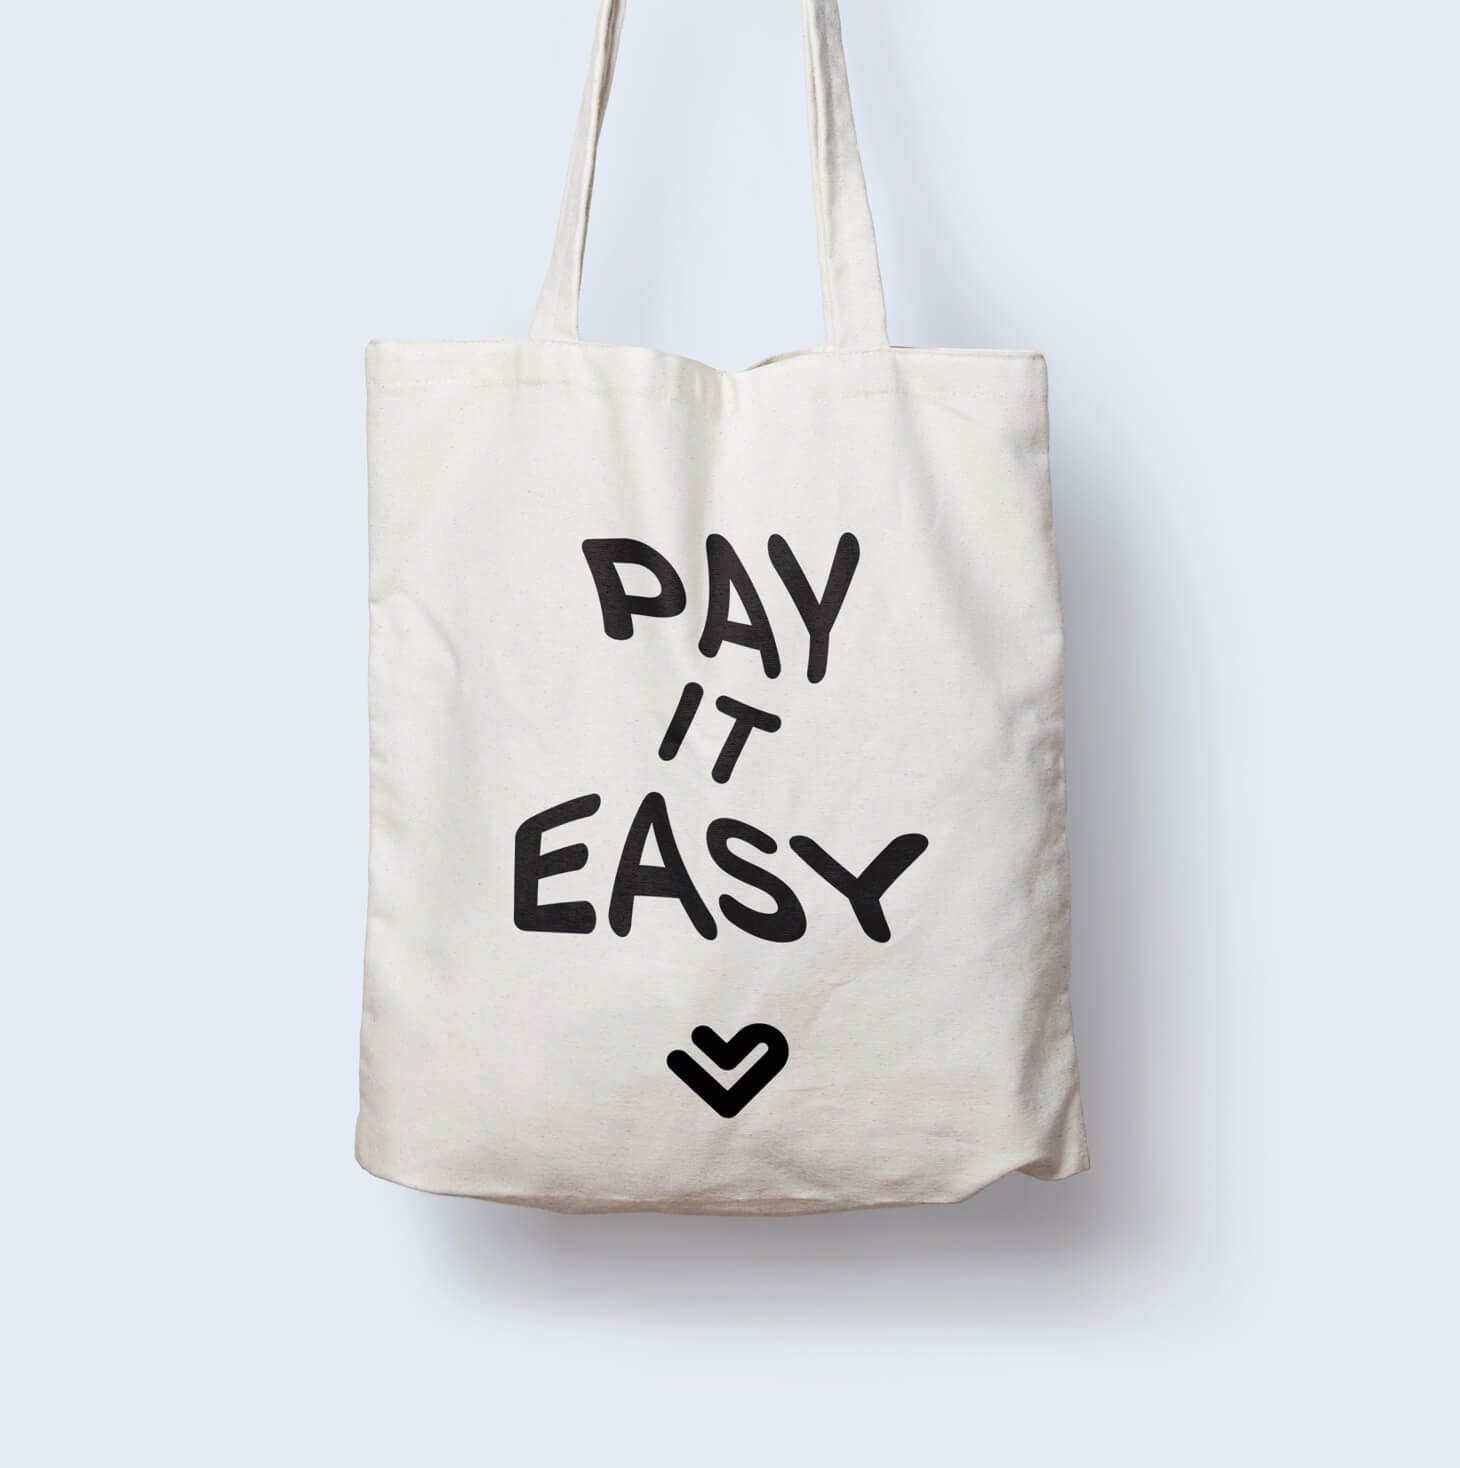 LayBuy | The Smart Way To Pay